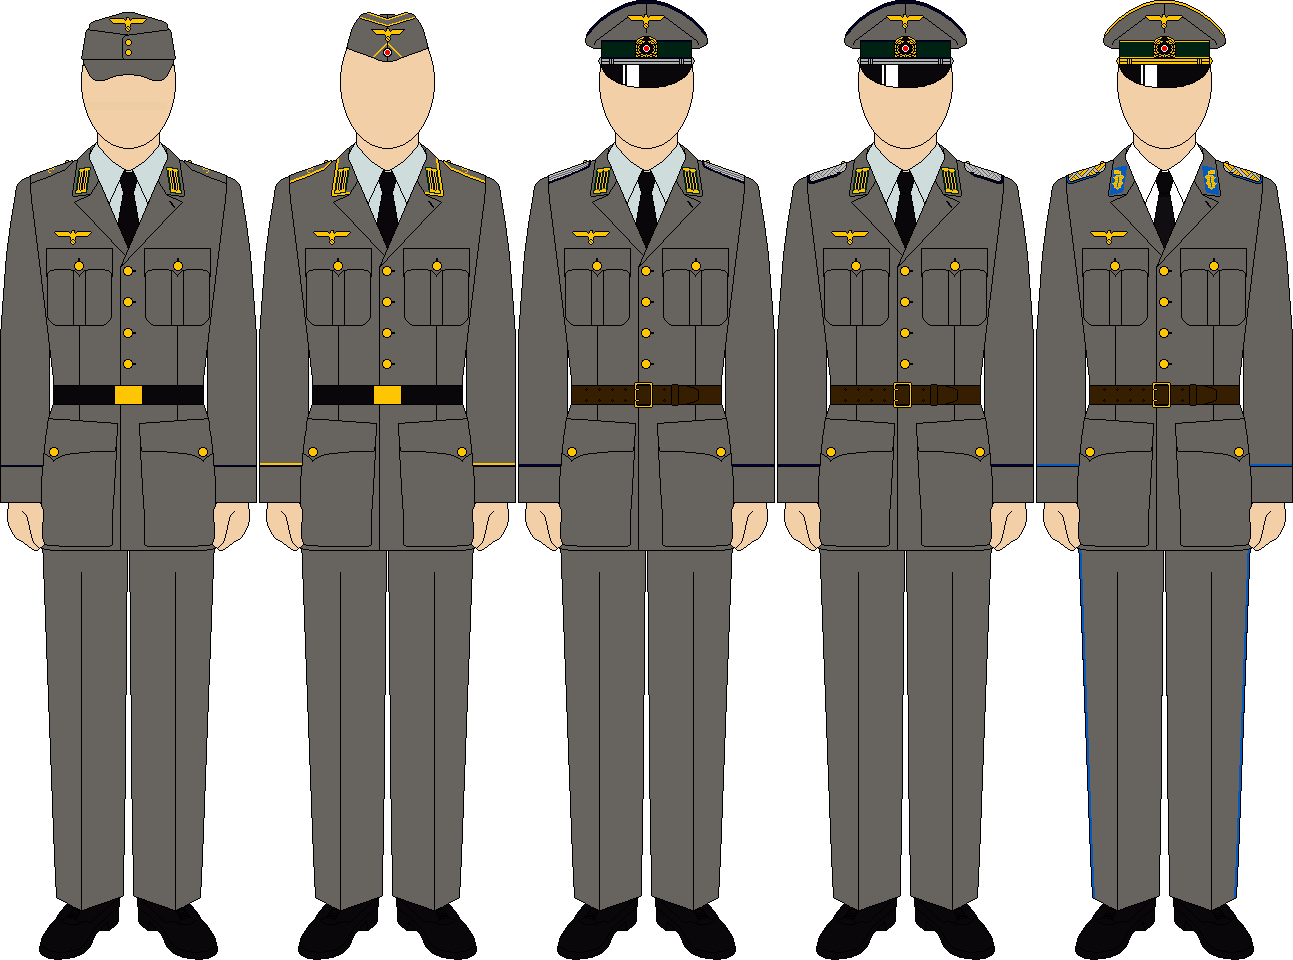 Kriegsmarine coastal service everyday uniforms by thefalconette-d5cyca7